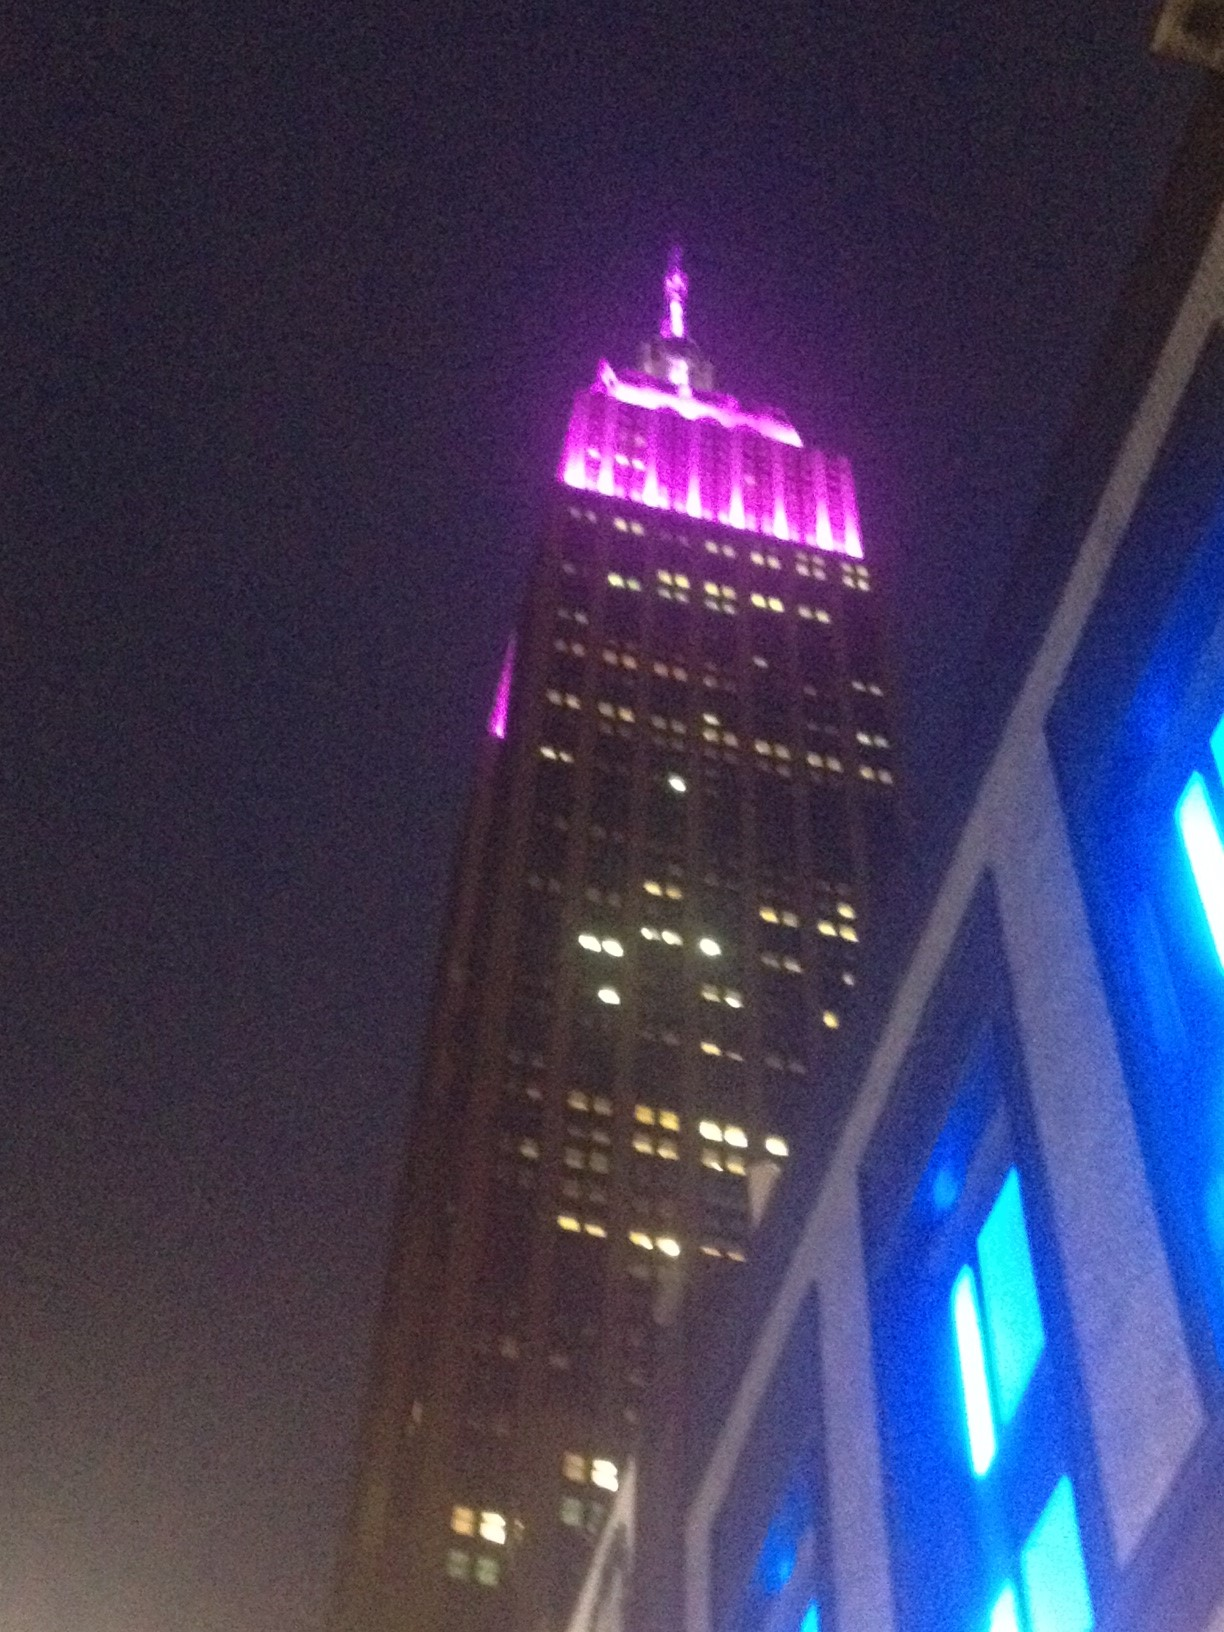 The Empire State Building has never looked better!